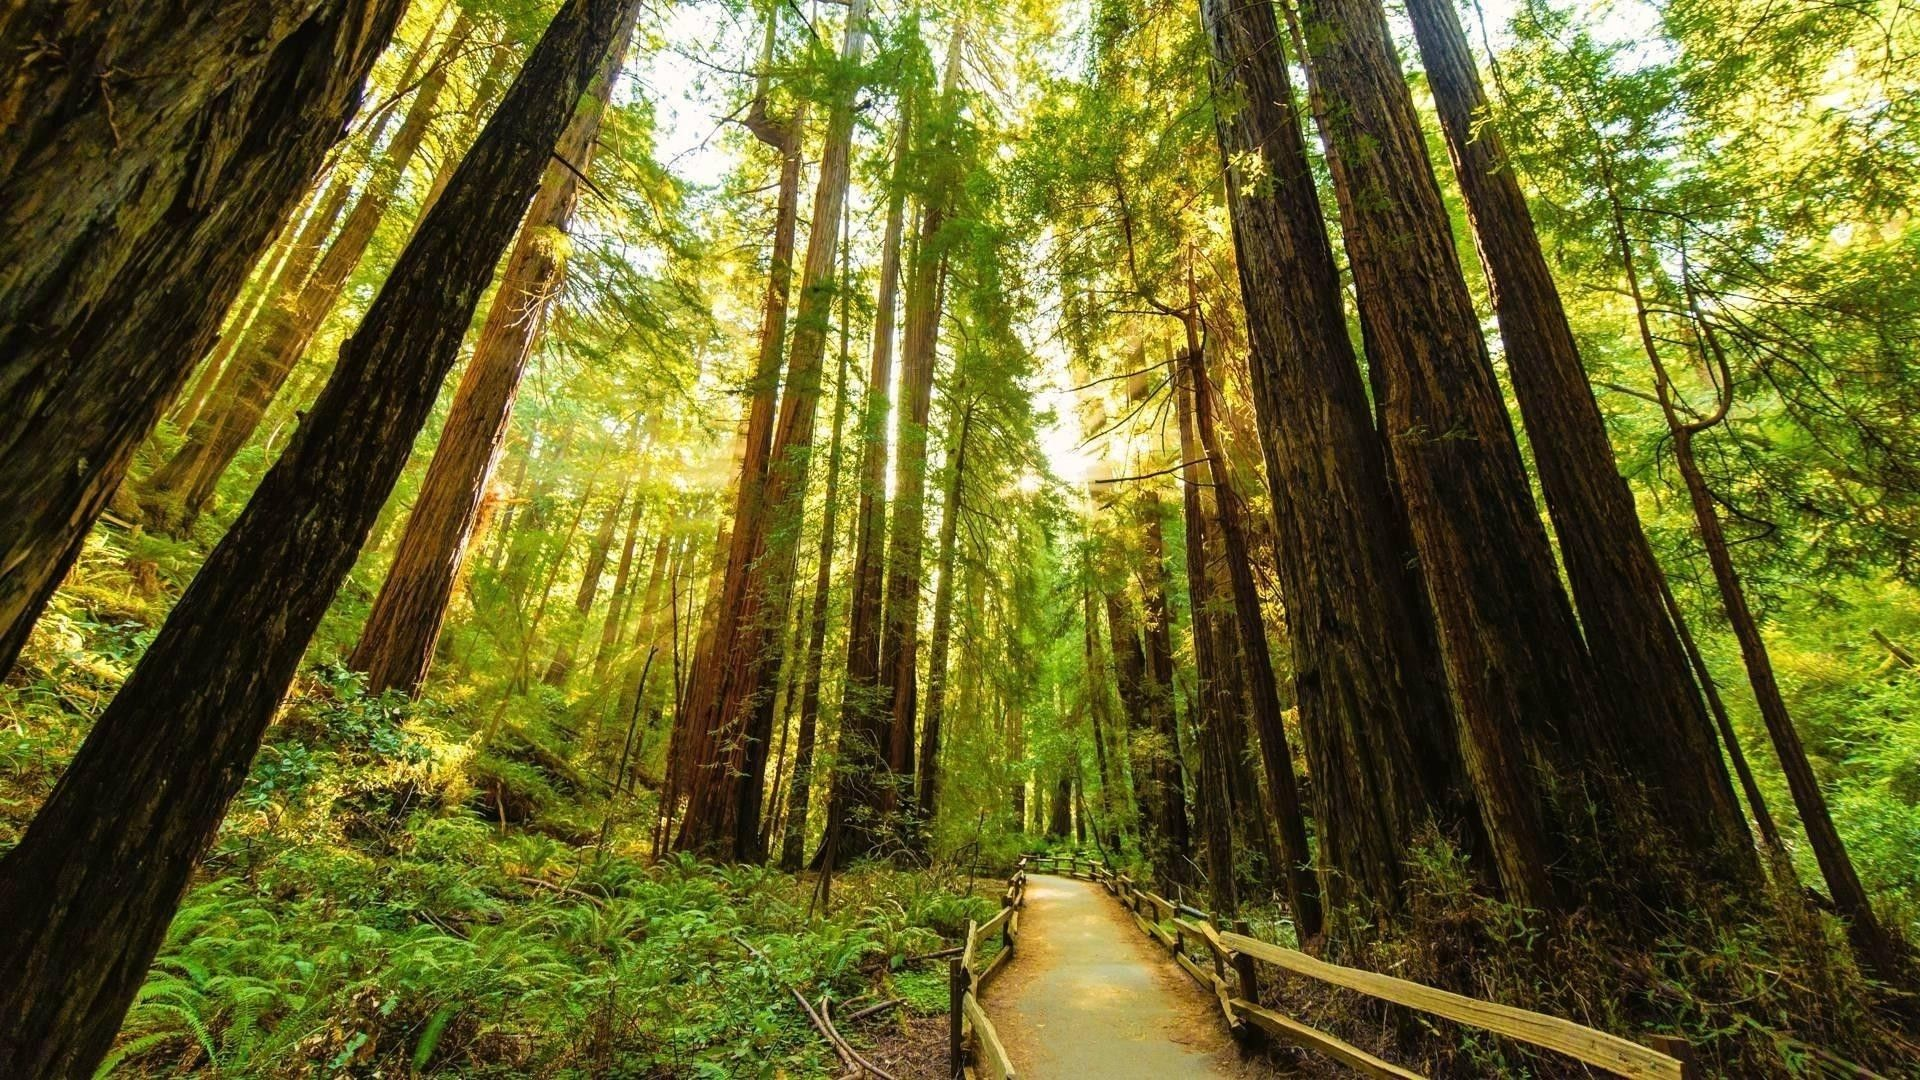 Rays Trees Redwoods Forest Tall Sun Path Nature Hd Images Landscape Trees Tree Tree Wallpaper